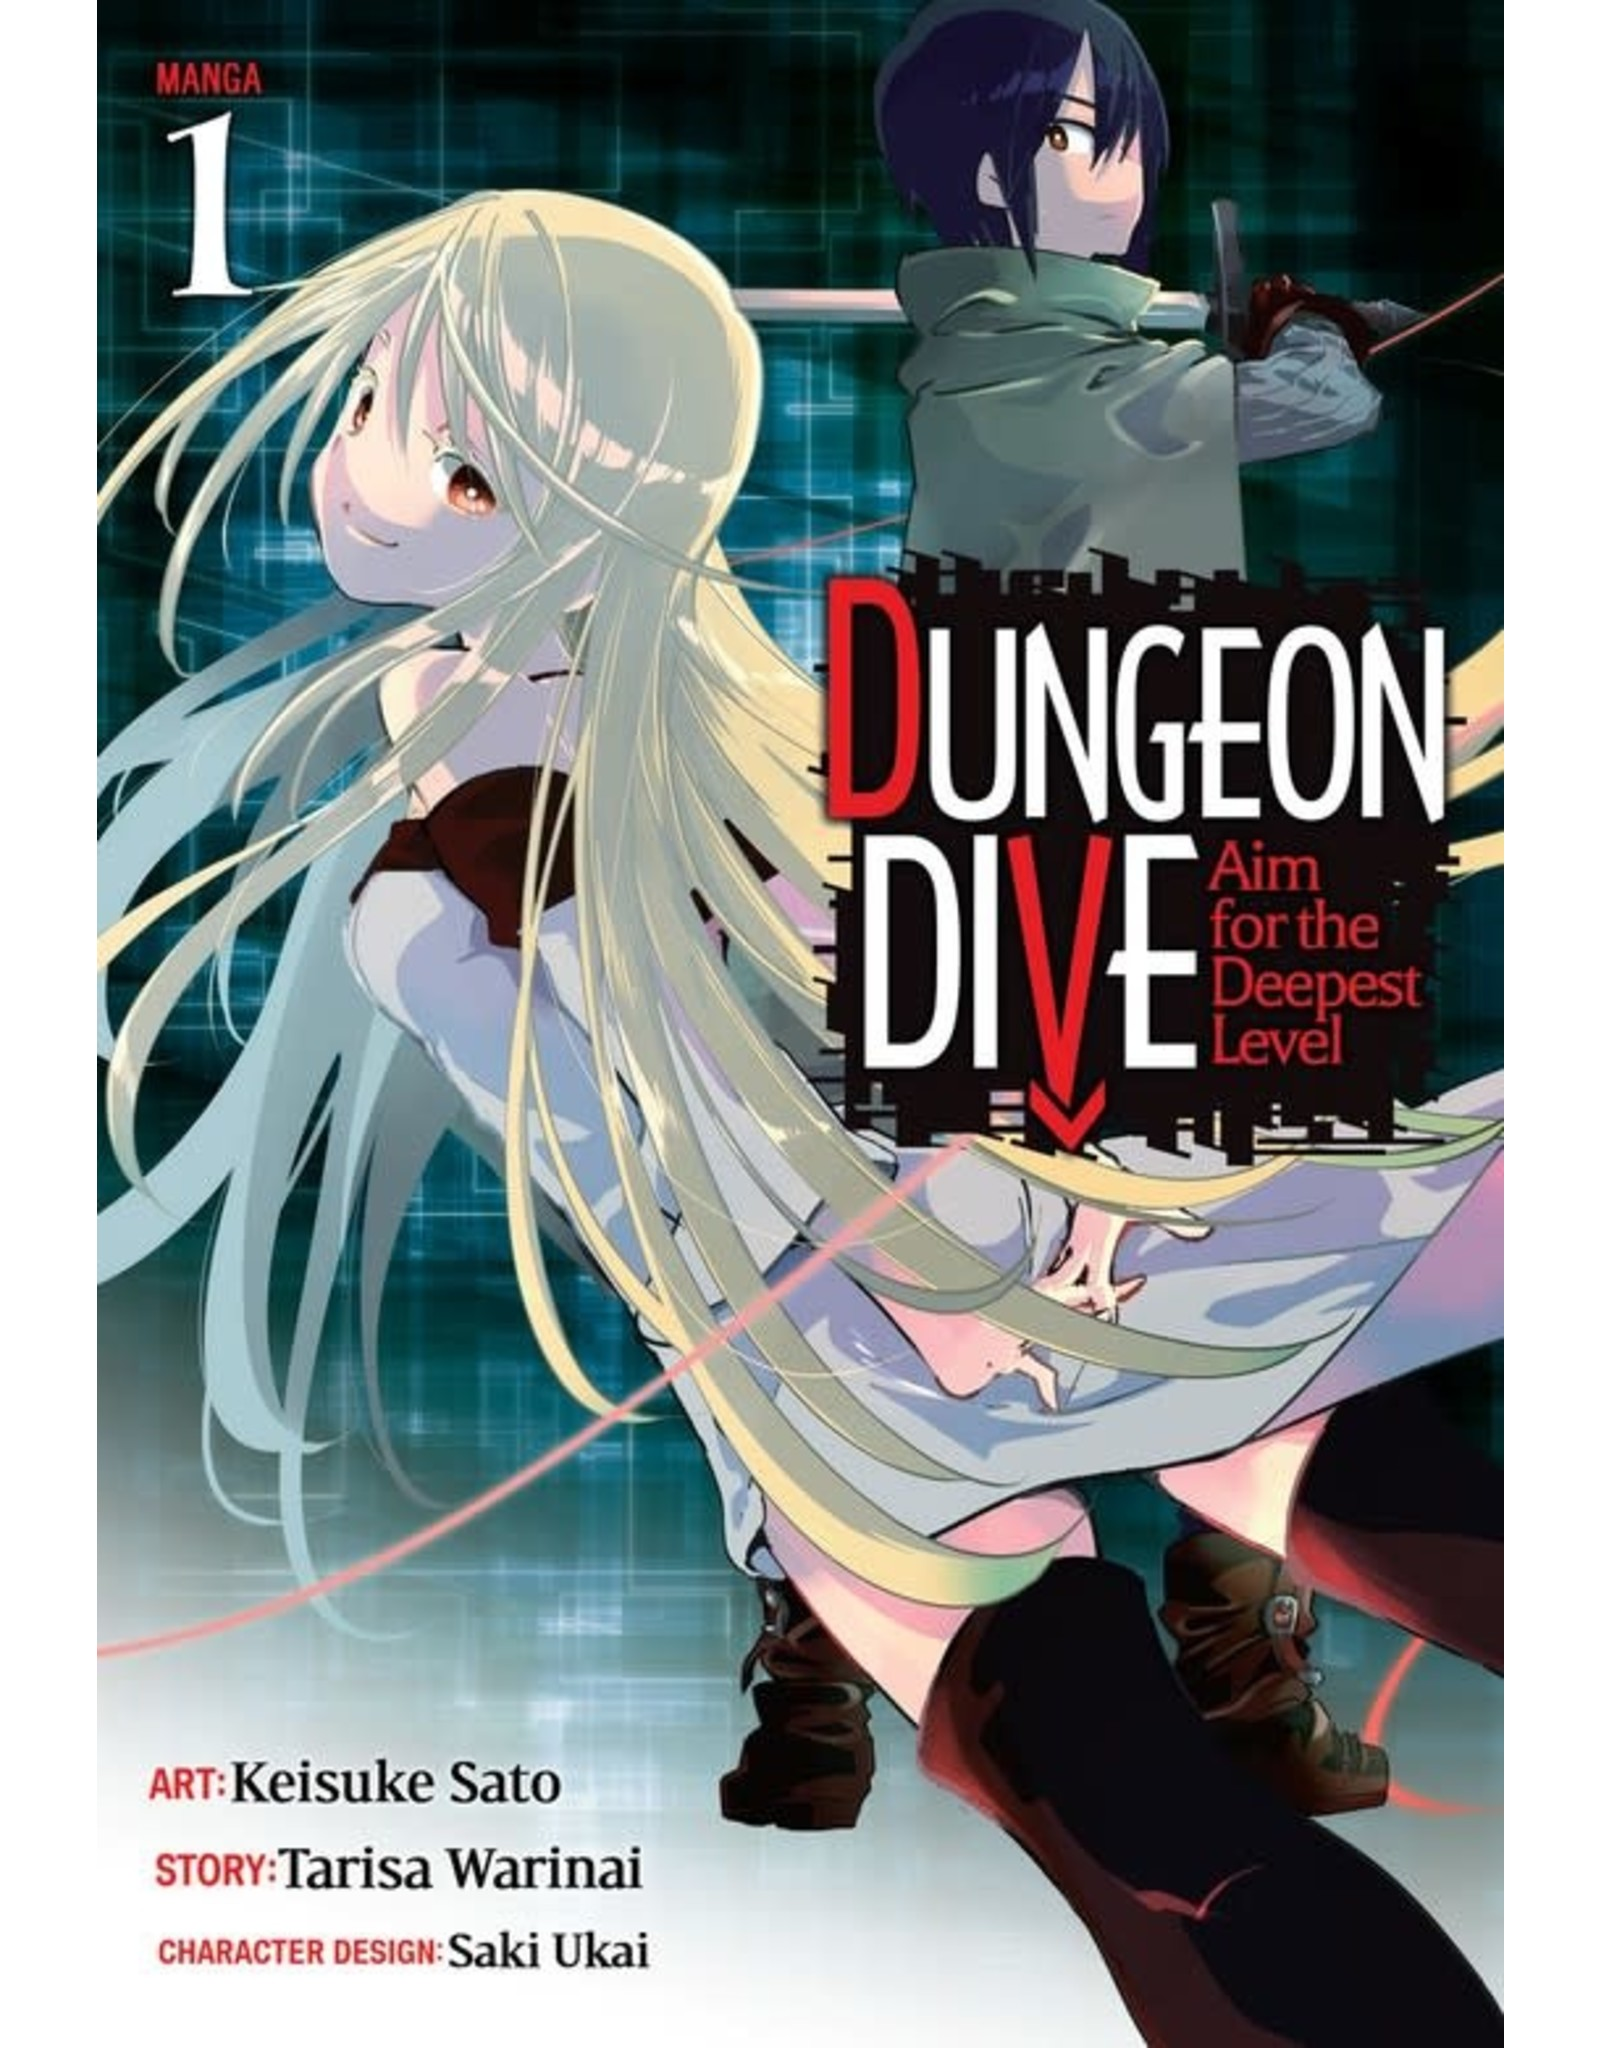 Dungeon Dive: Aim for the Deepest Level 1 (Engelstalig) - Manga